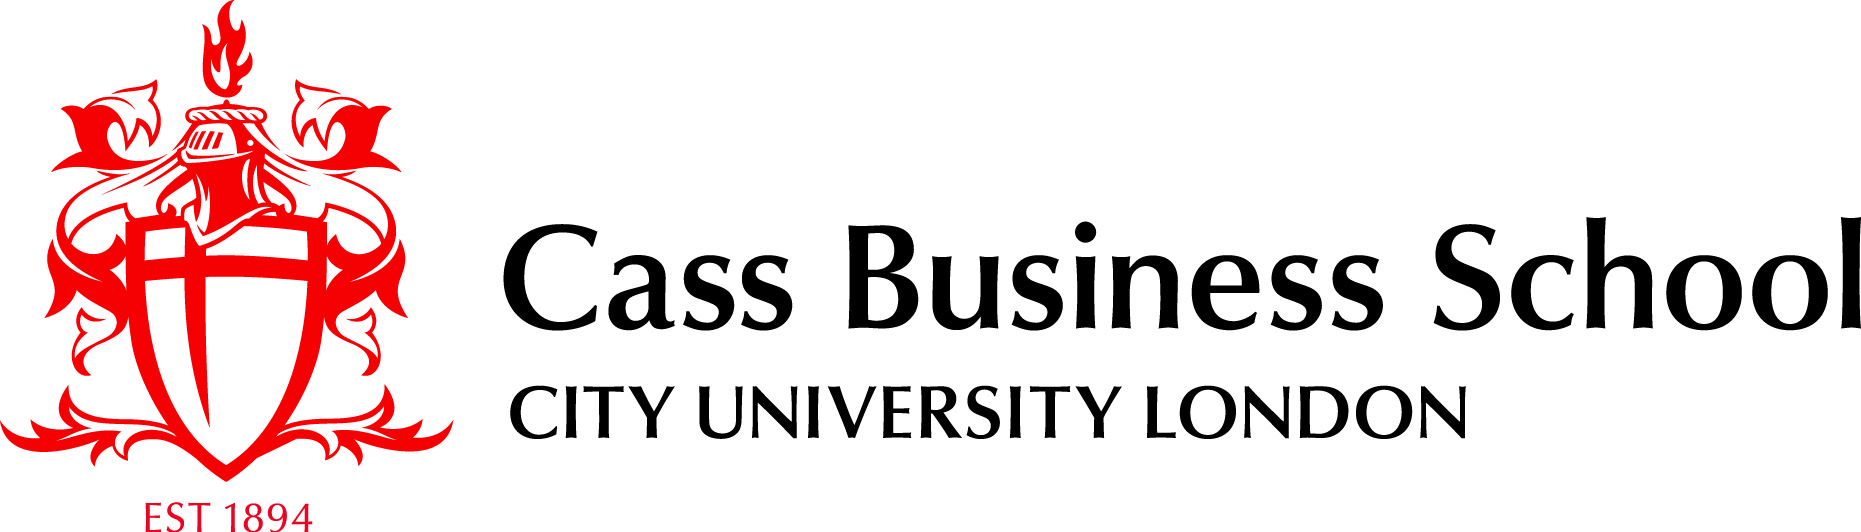 CassBusinessSchool